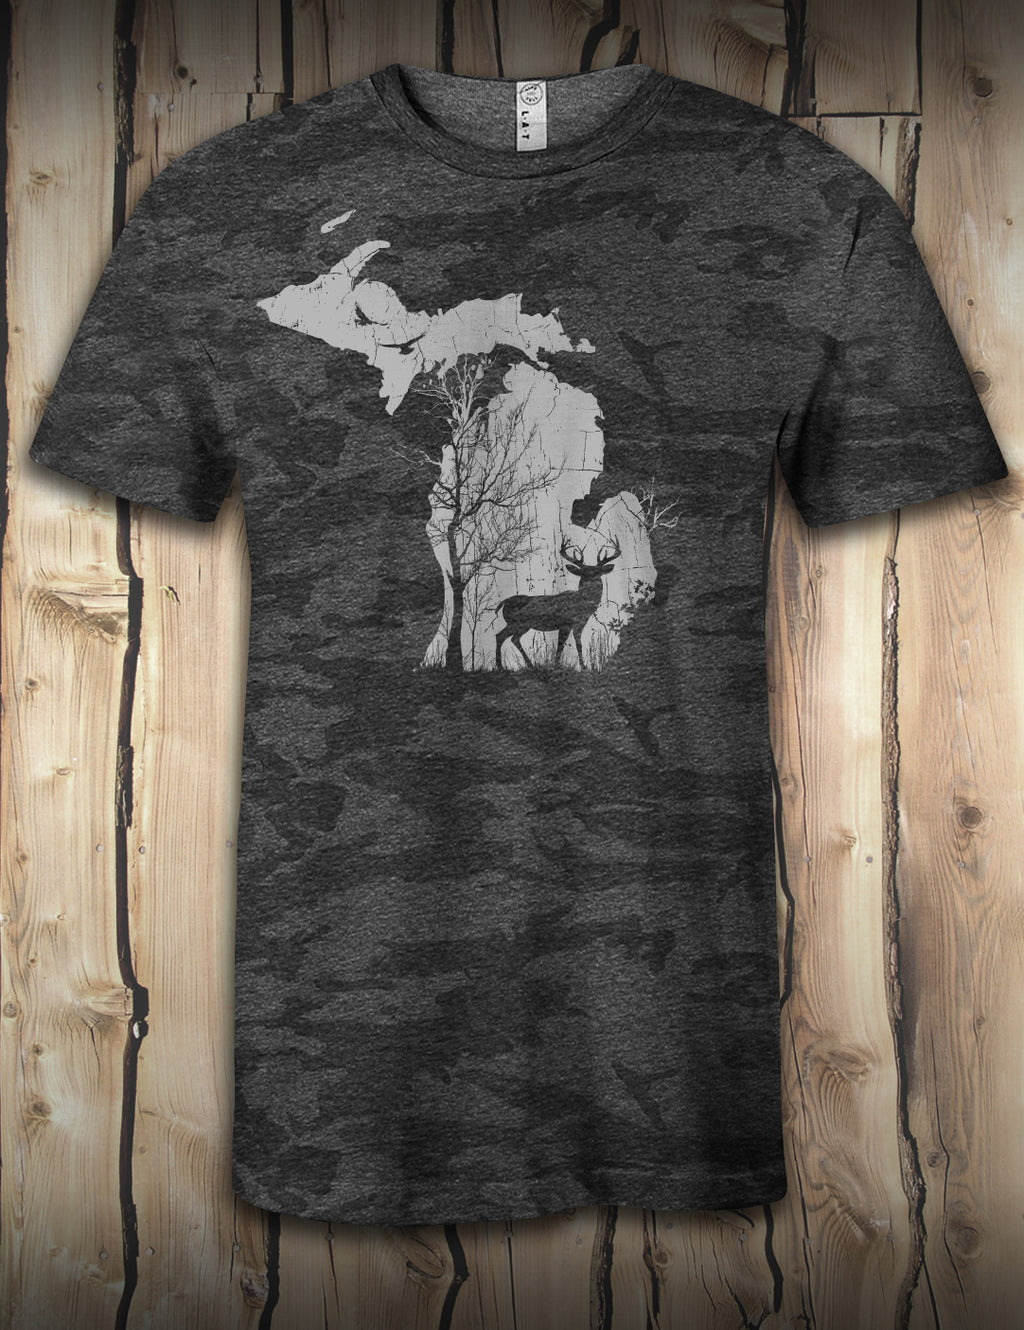 Deer in the Woods - Black Camo